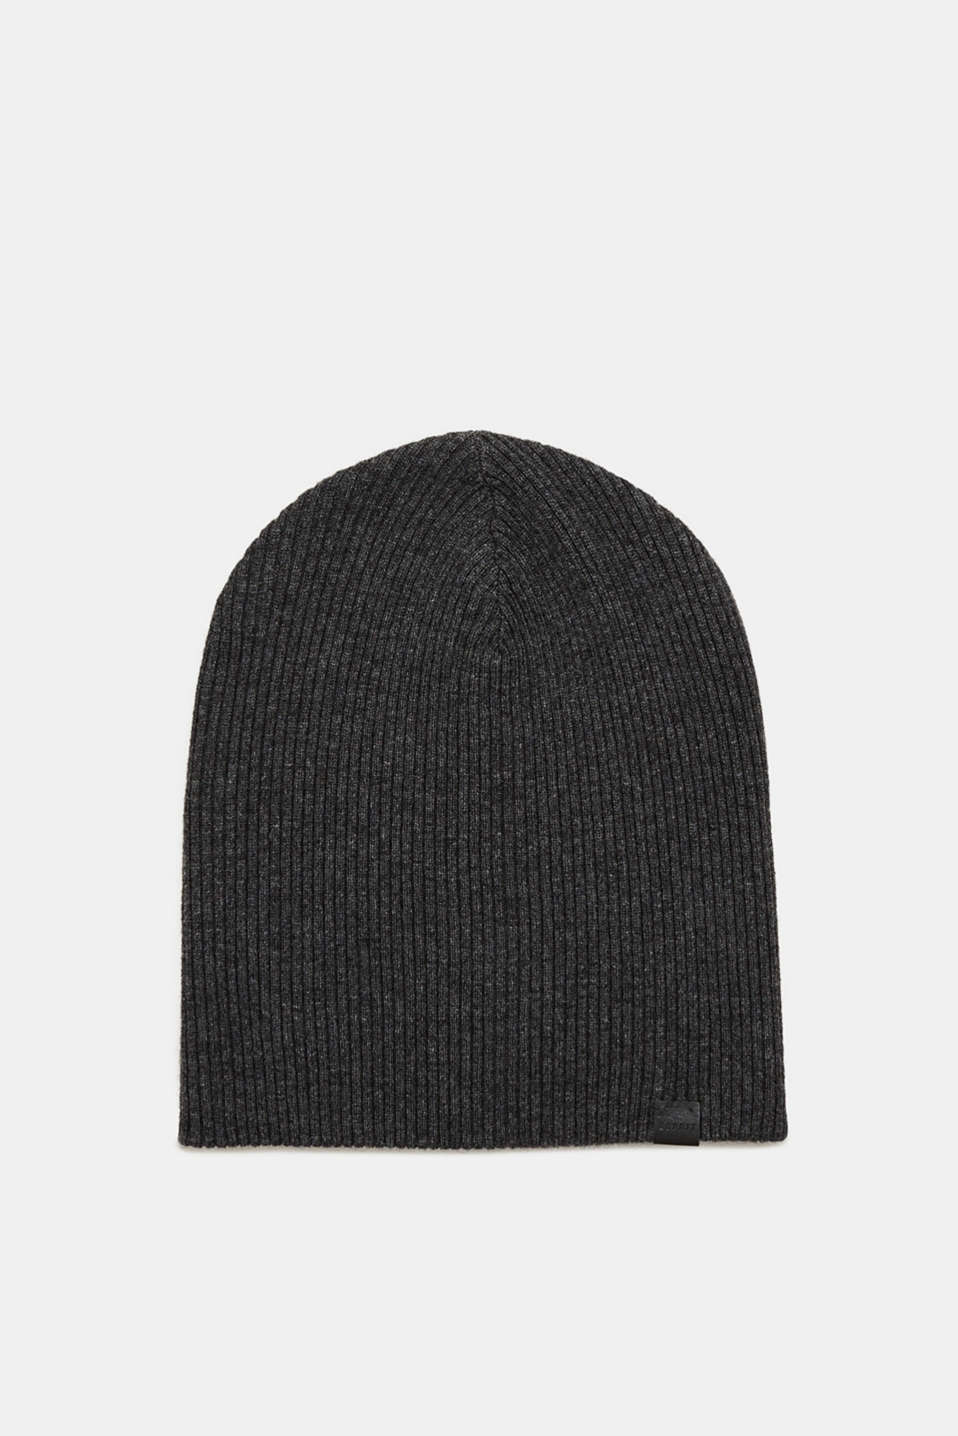 Esprit - Hat with a ribbed texture in a wool/cashmere blend